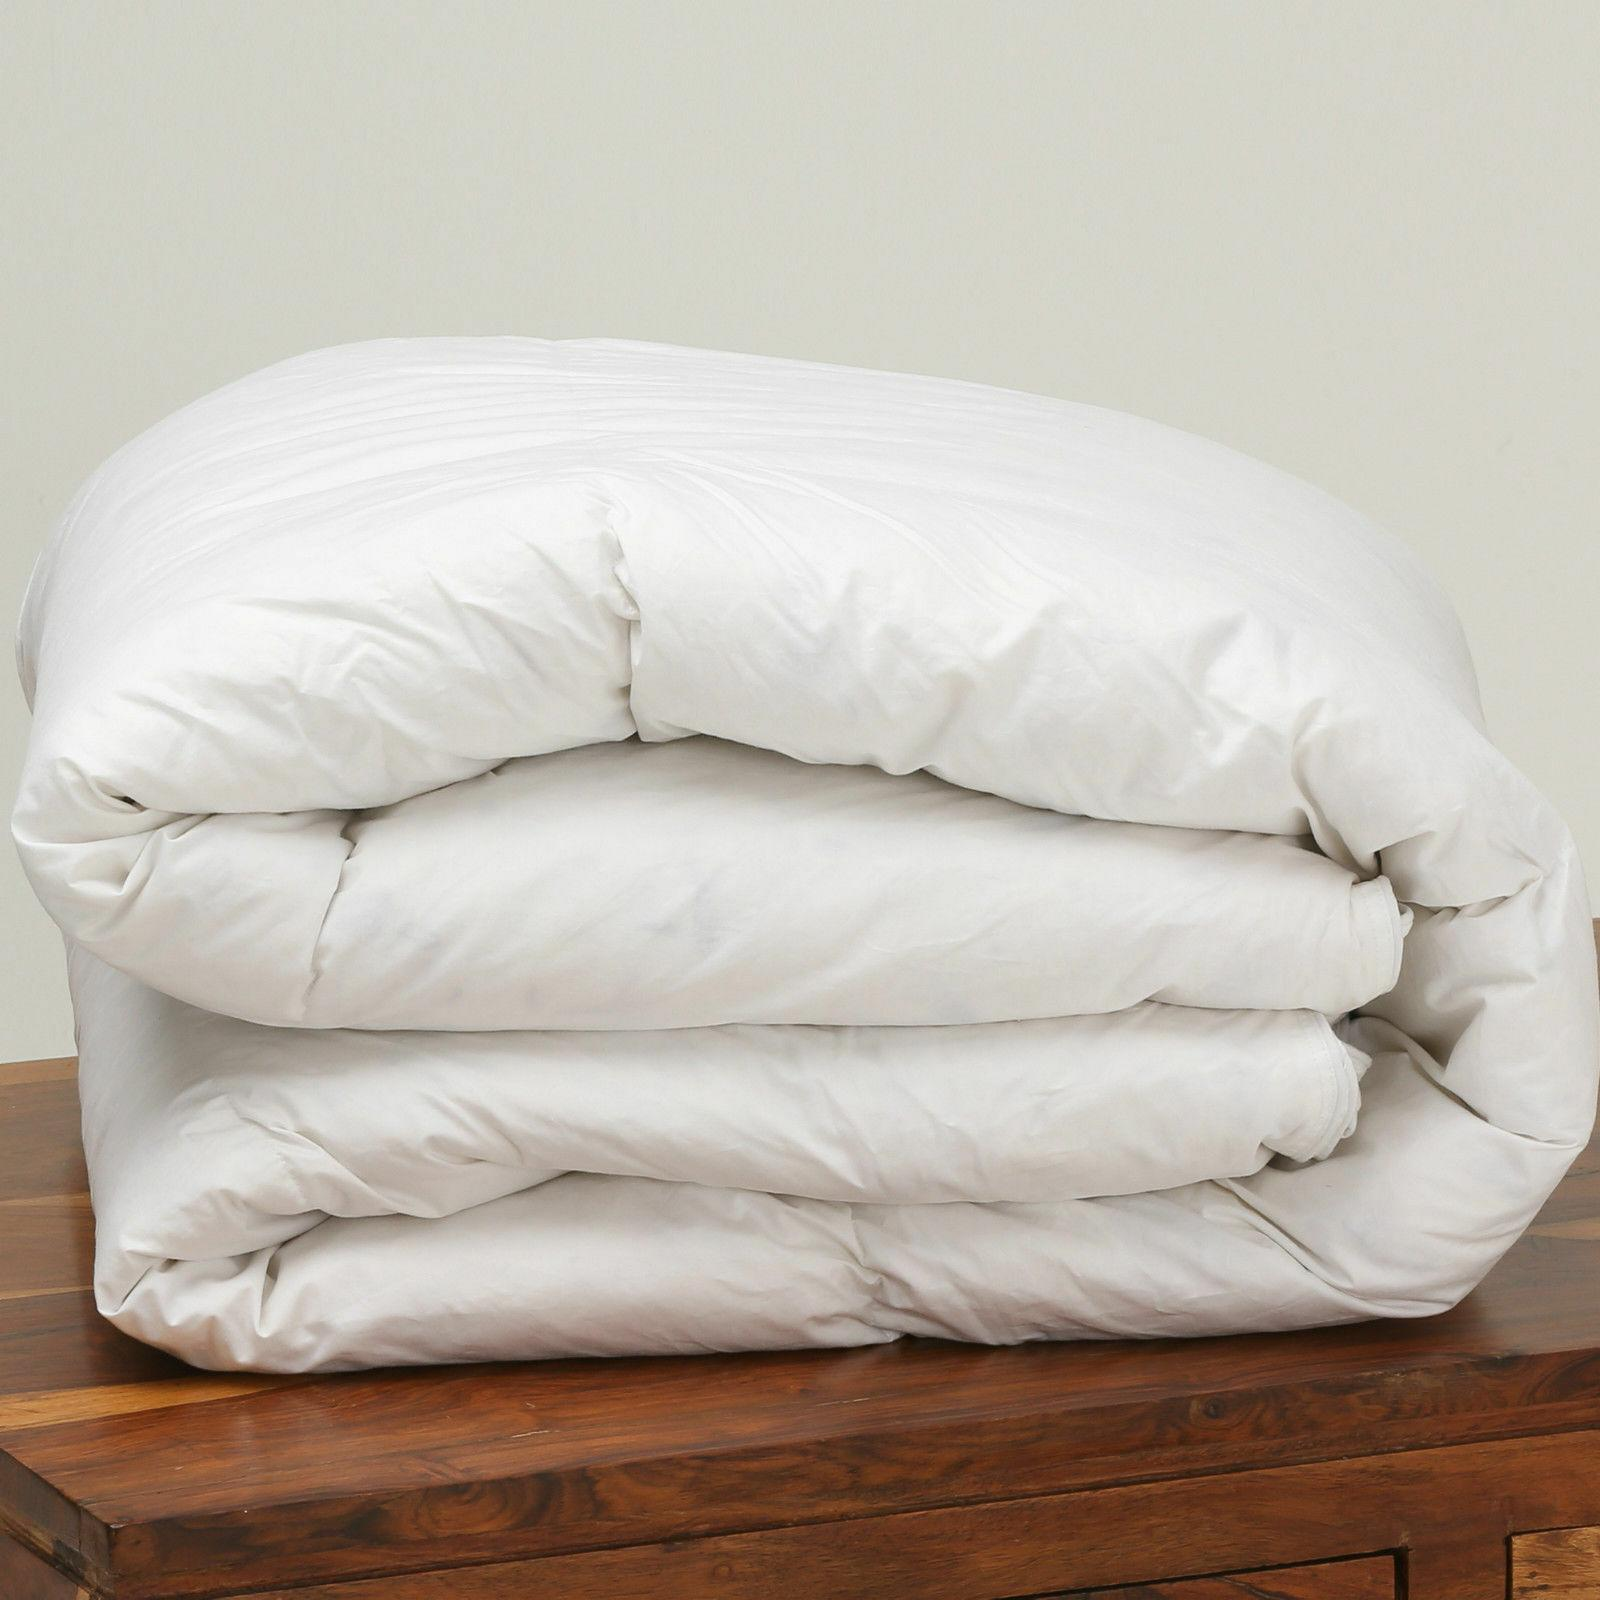 Hungarian Down Duvets Feather & All